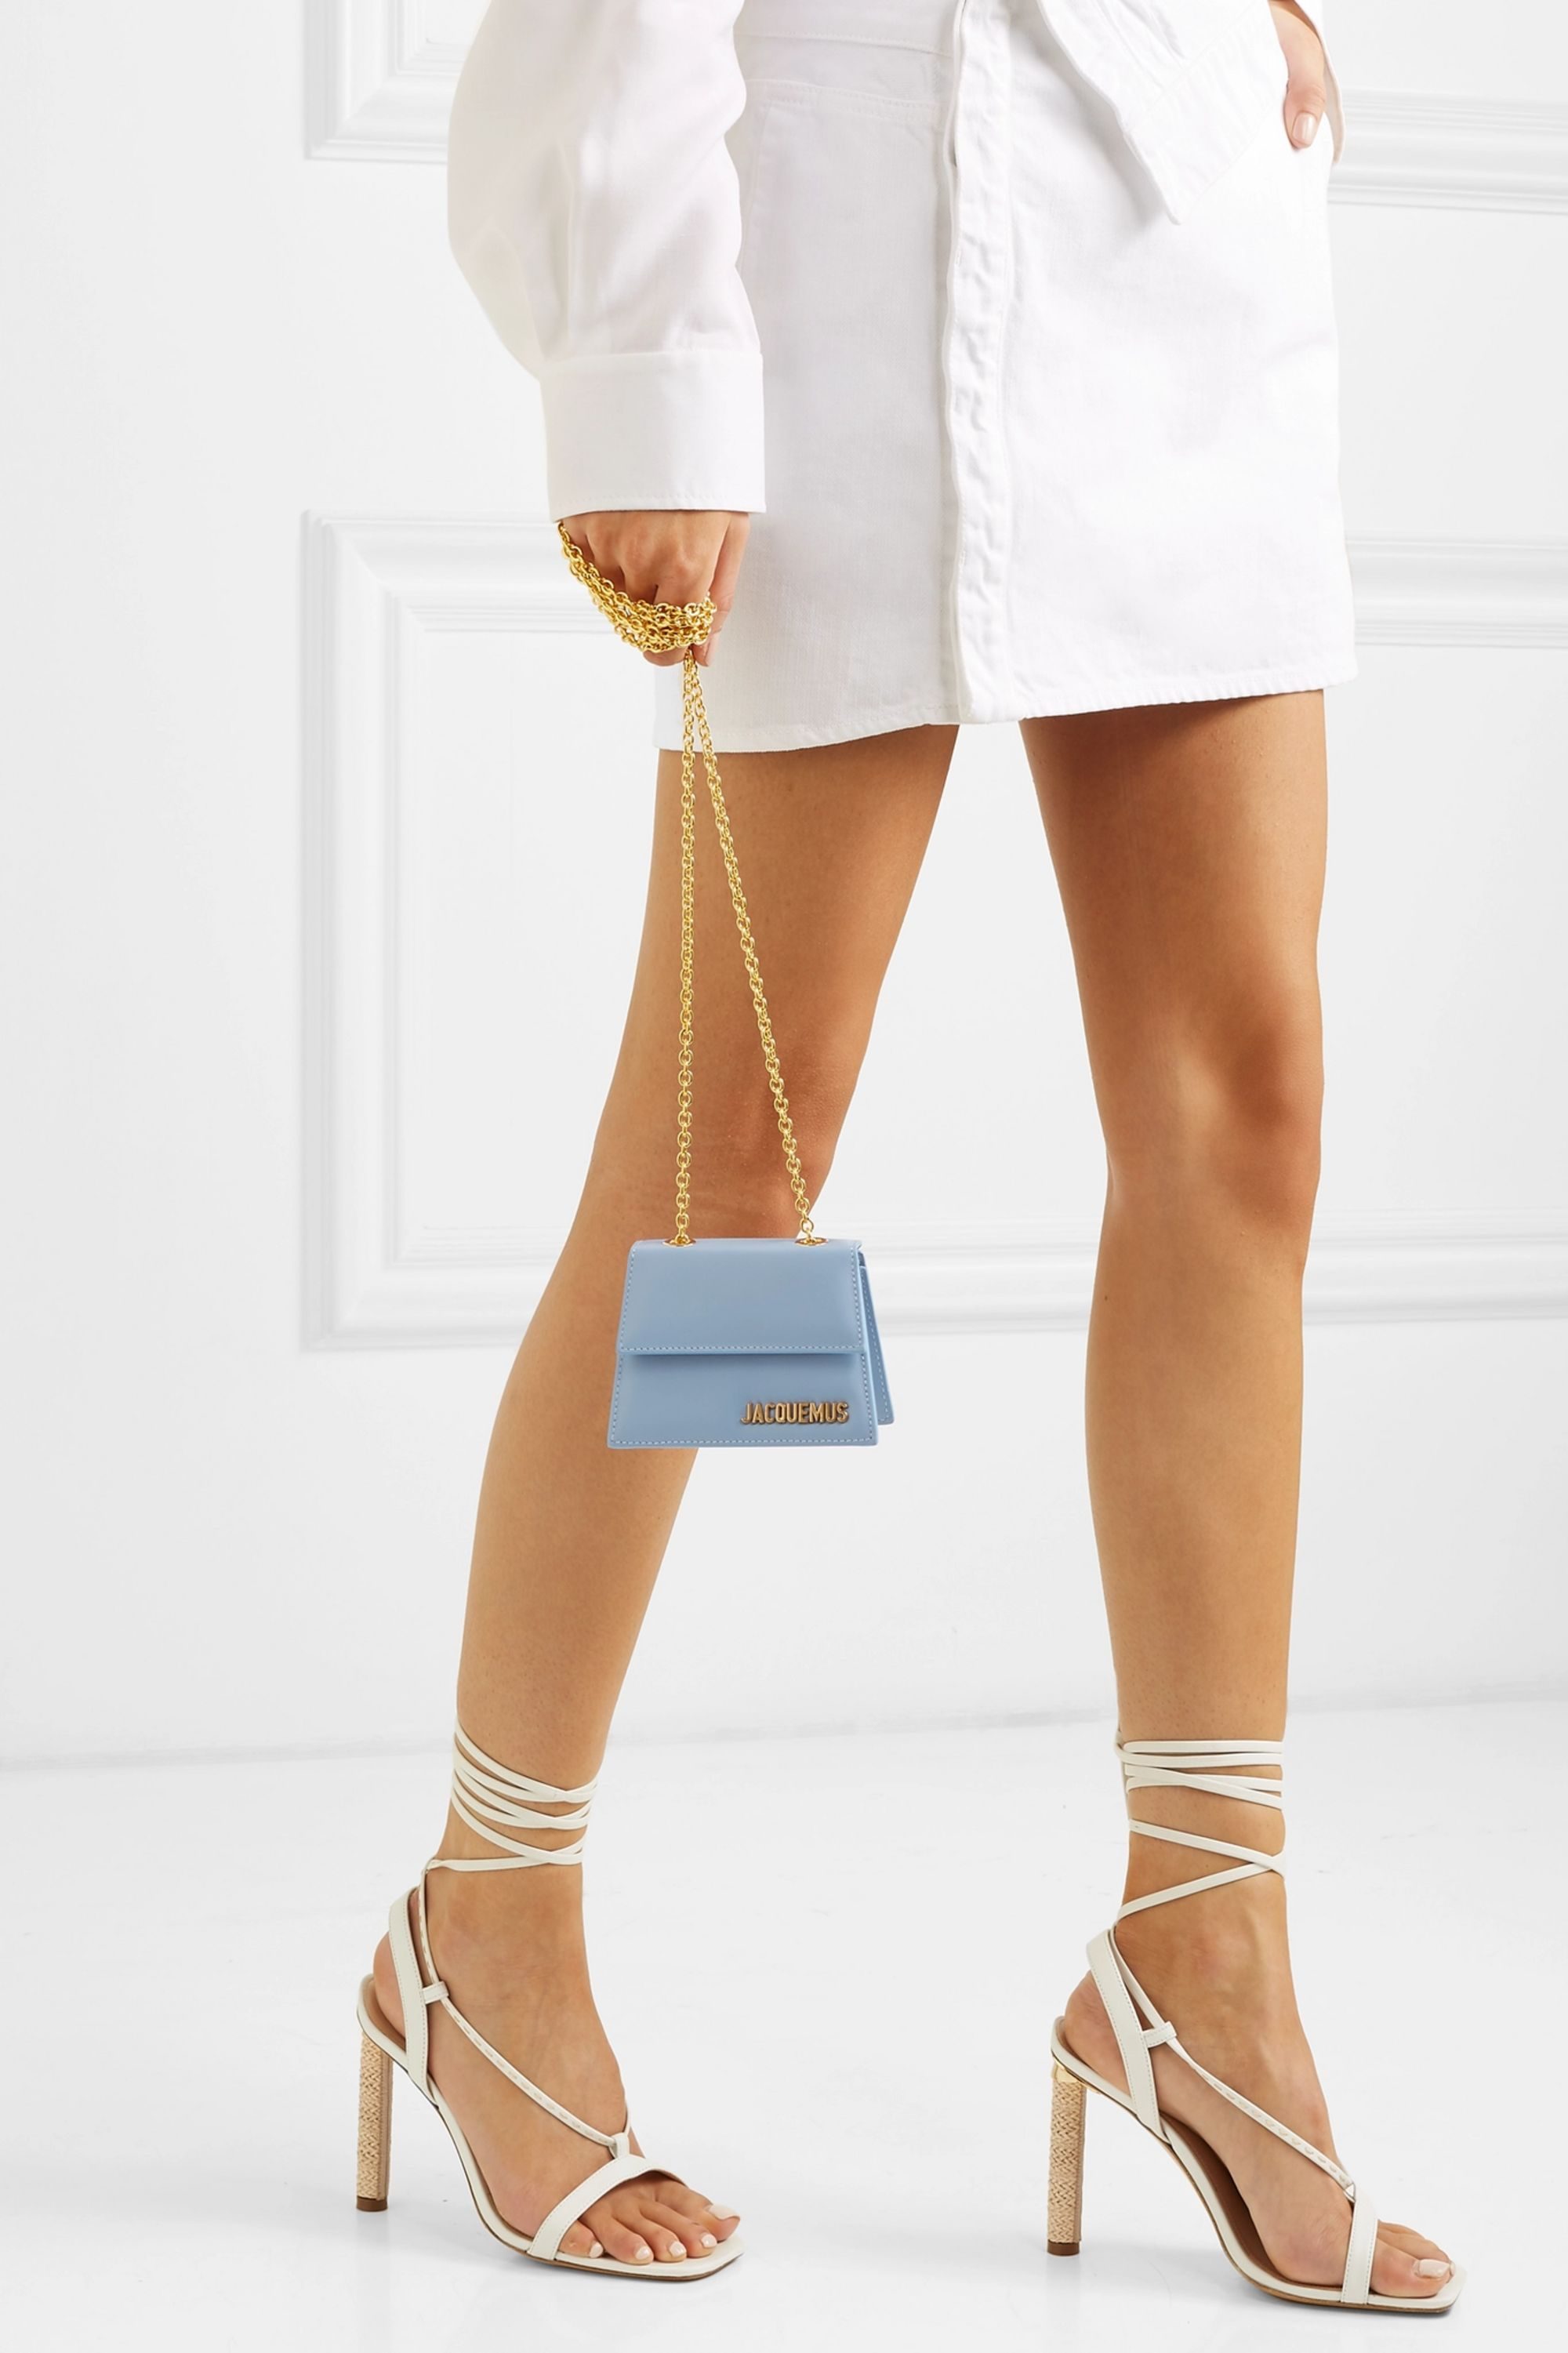 Jacquemus Le Piccolo leather shoulder bag